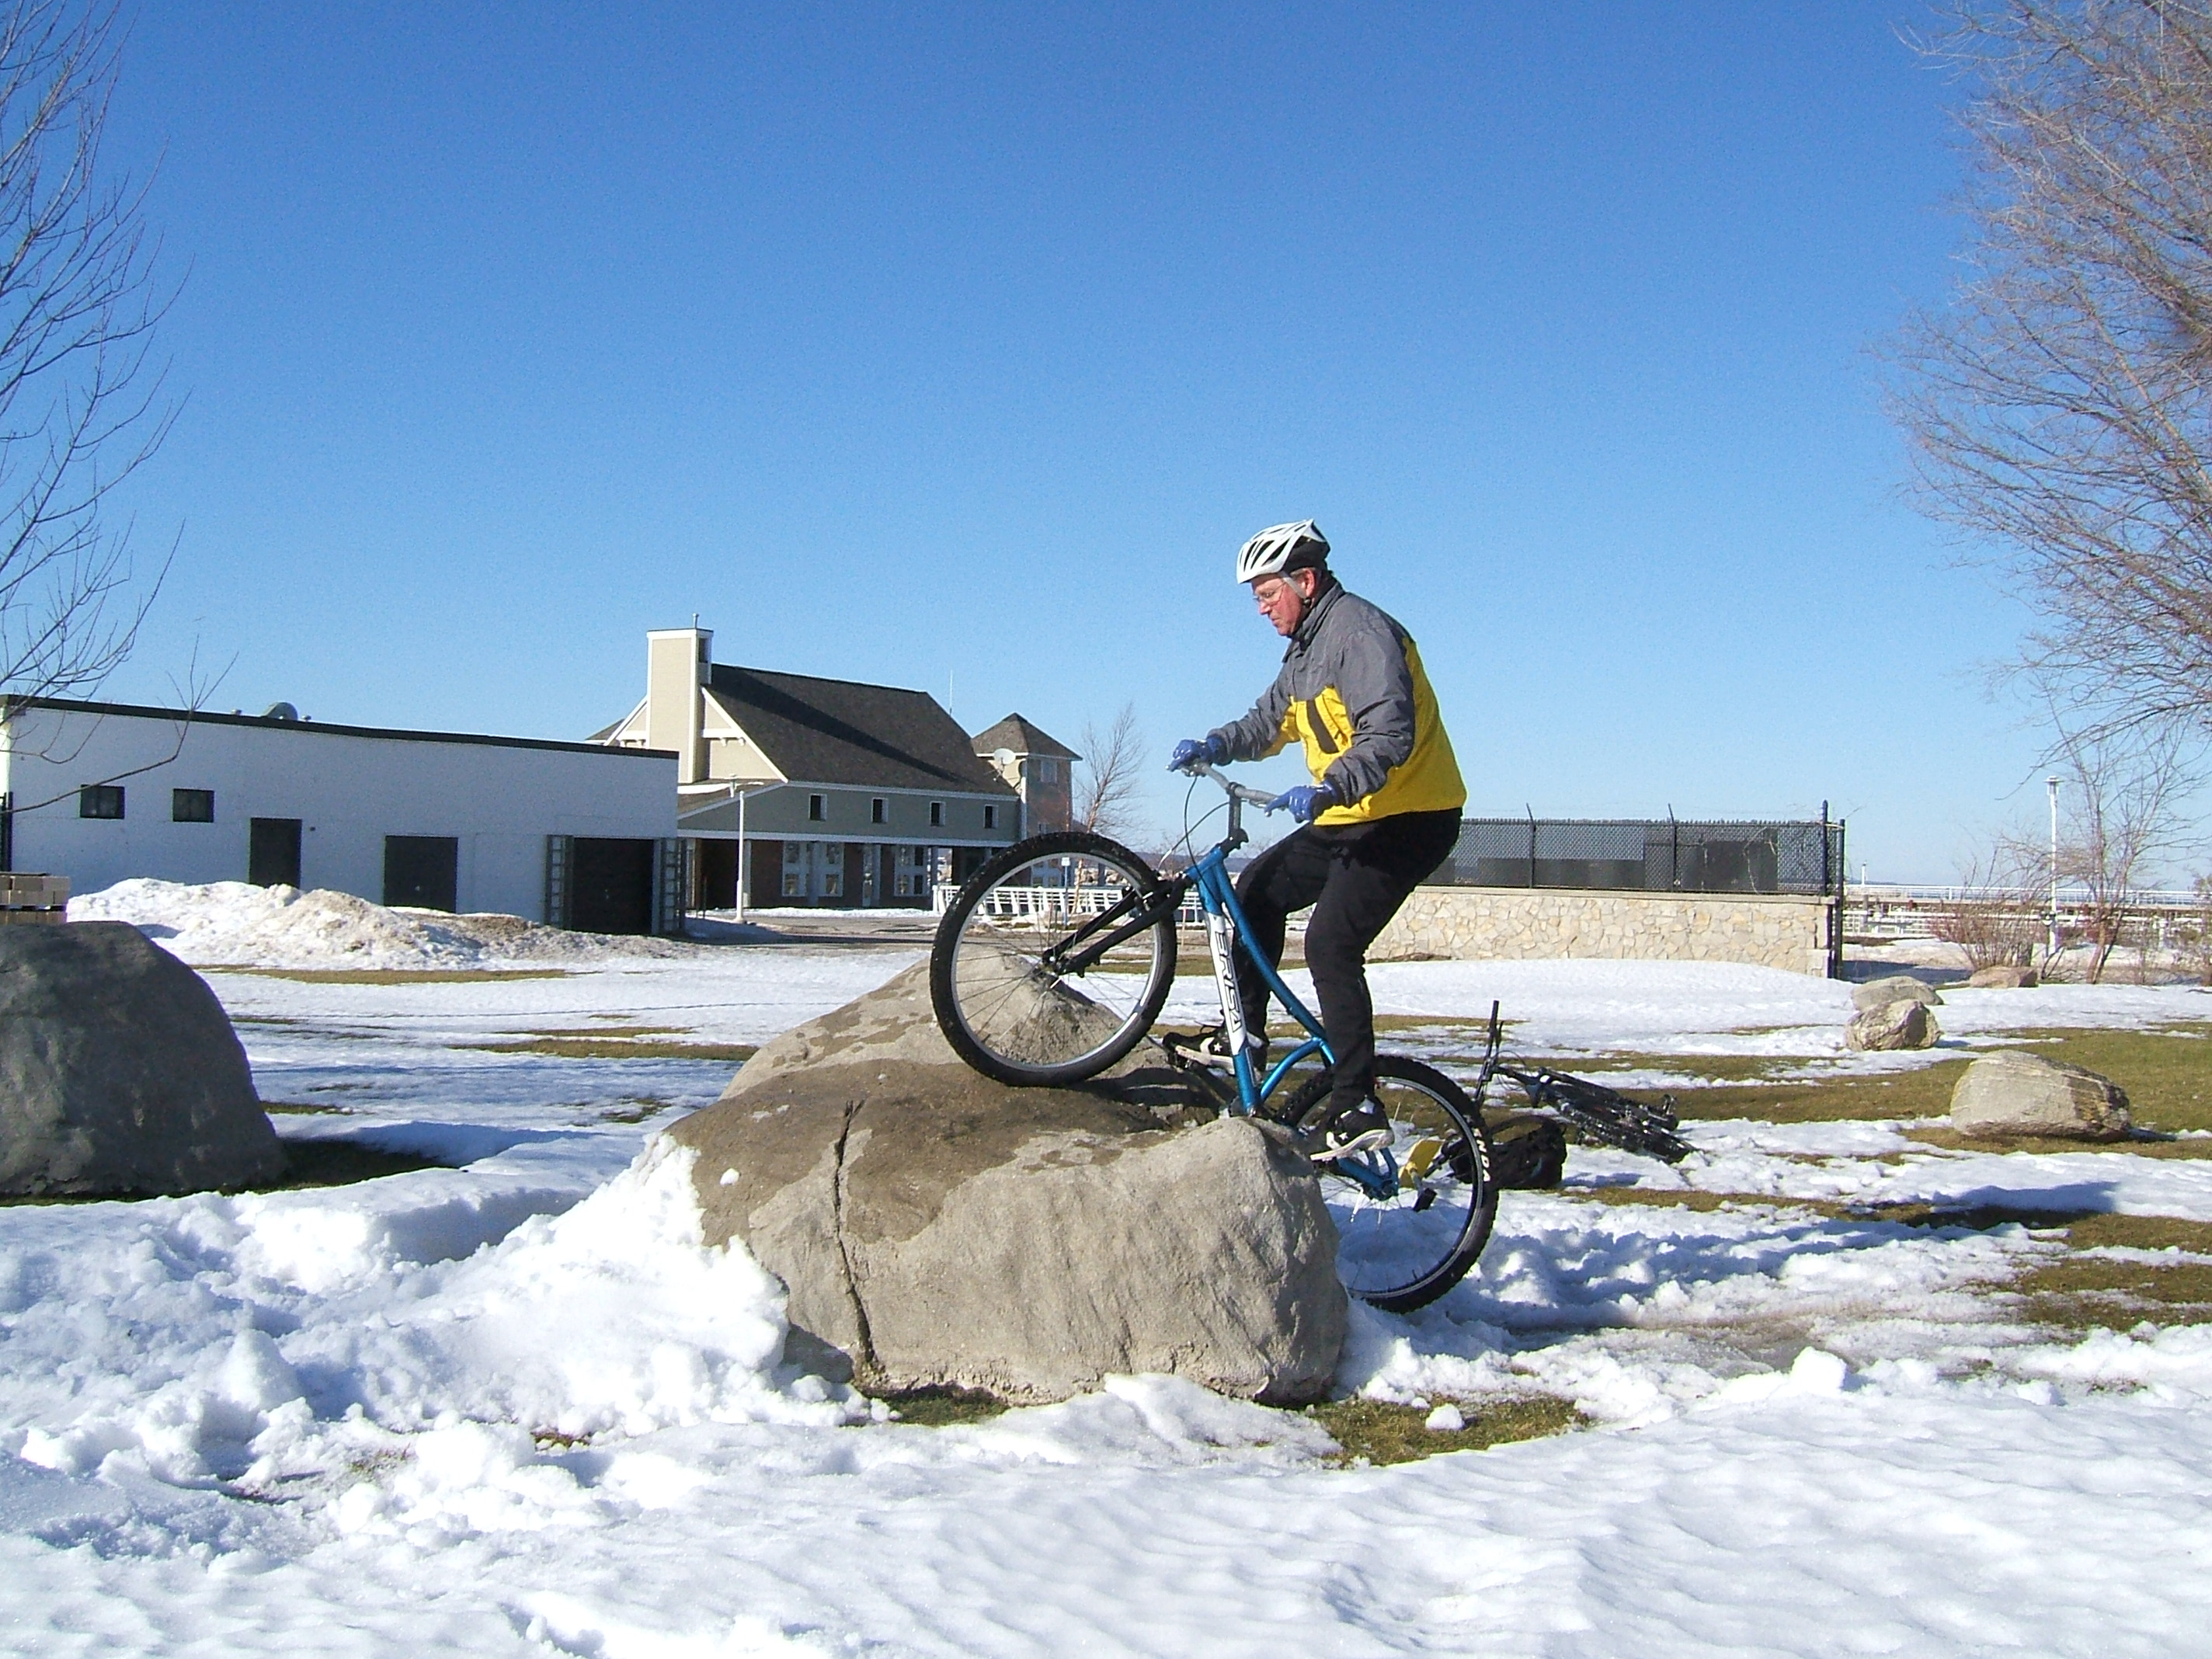 We made some snow ramps, but they made it harder to ride the rocks - the snow was too soft